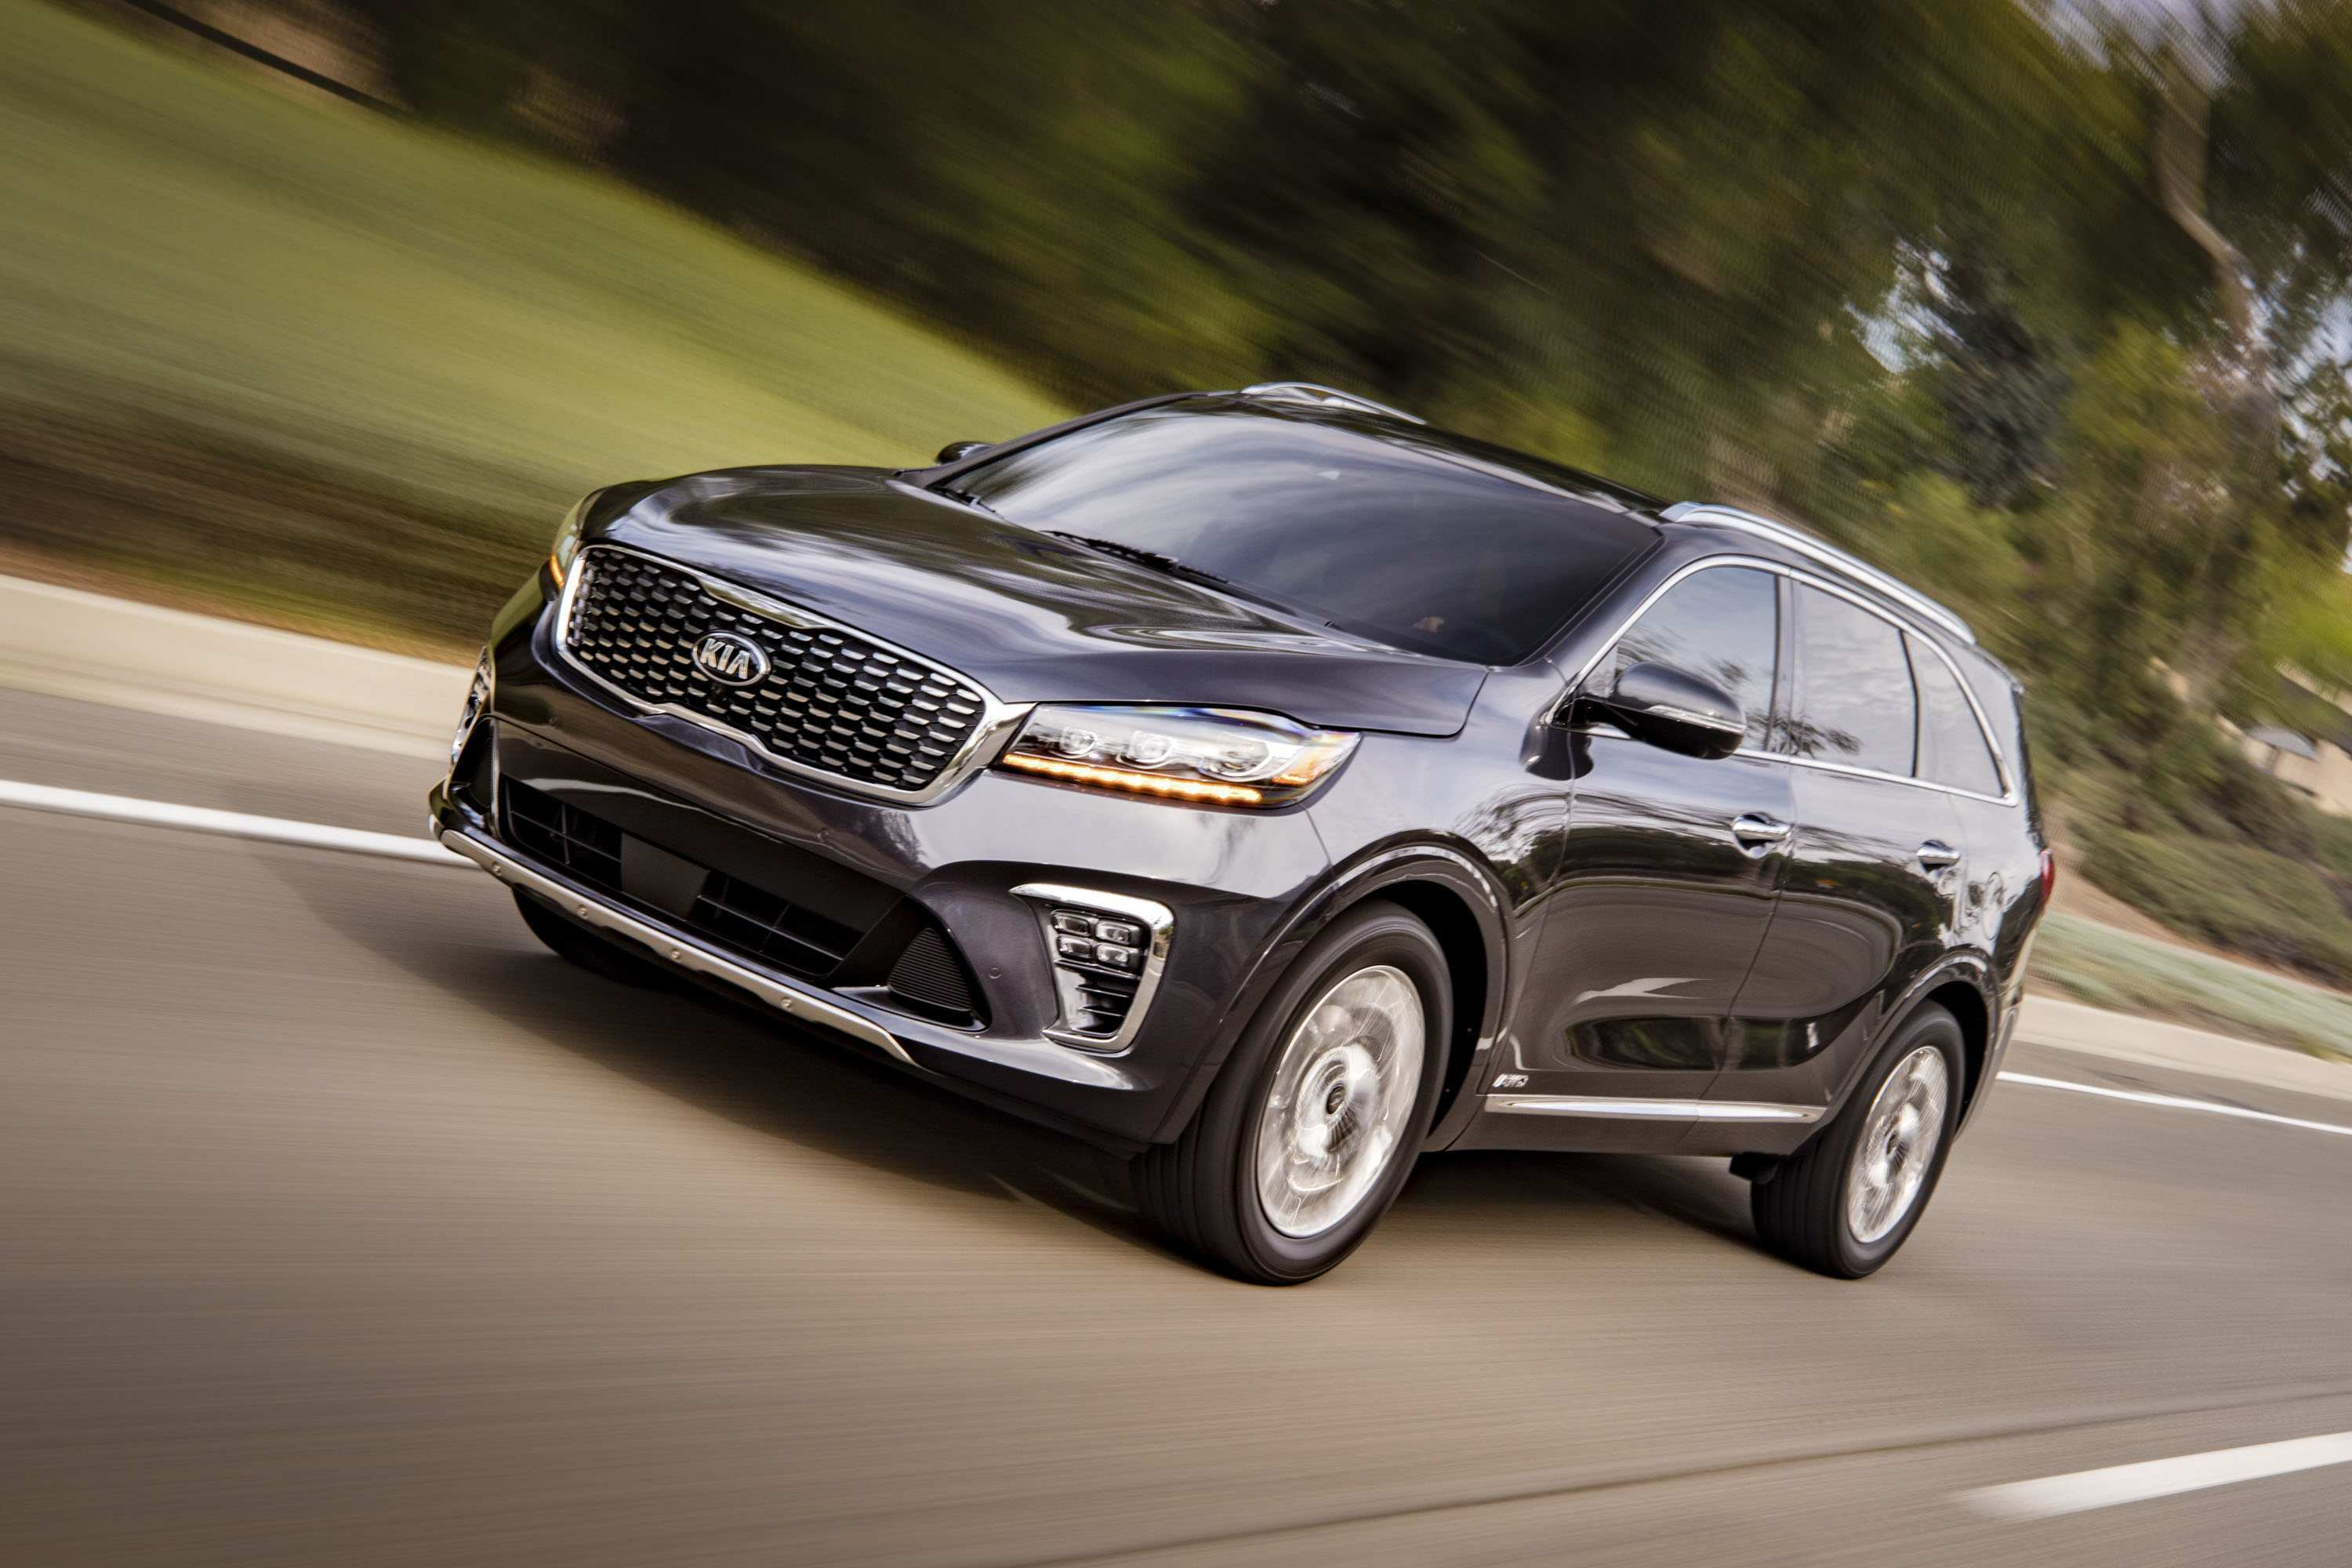 50 Concept of Kia Sorento 2020 Brochure Redesign and Concept for Kia Sorento 2020 Brochure